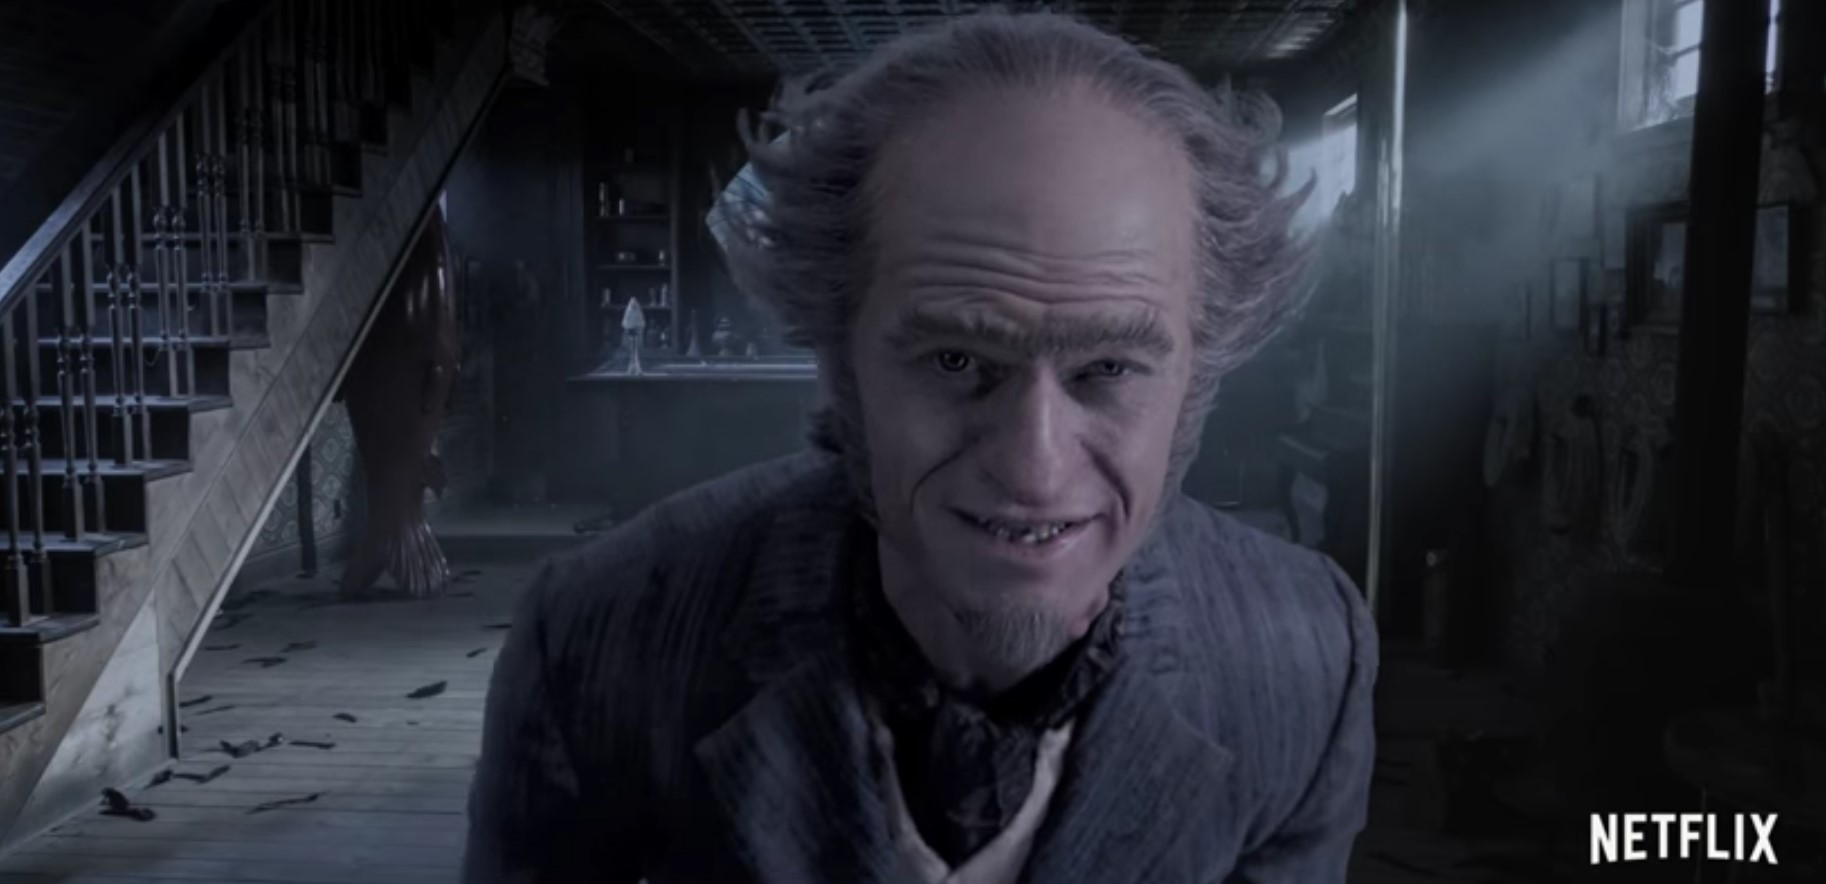 A Series of Unfortunate Events Author Apologizes for Inappropriate Sexual Comments